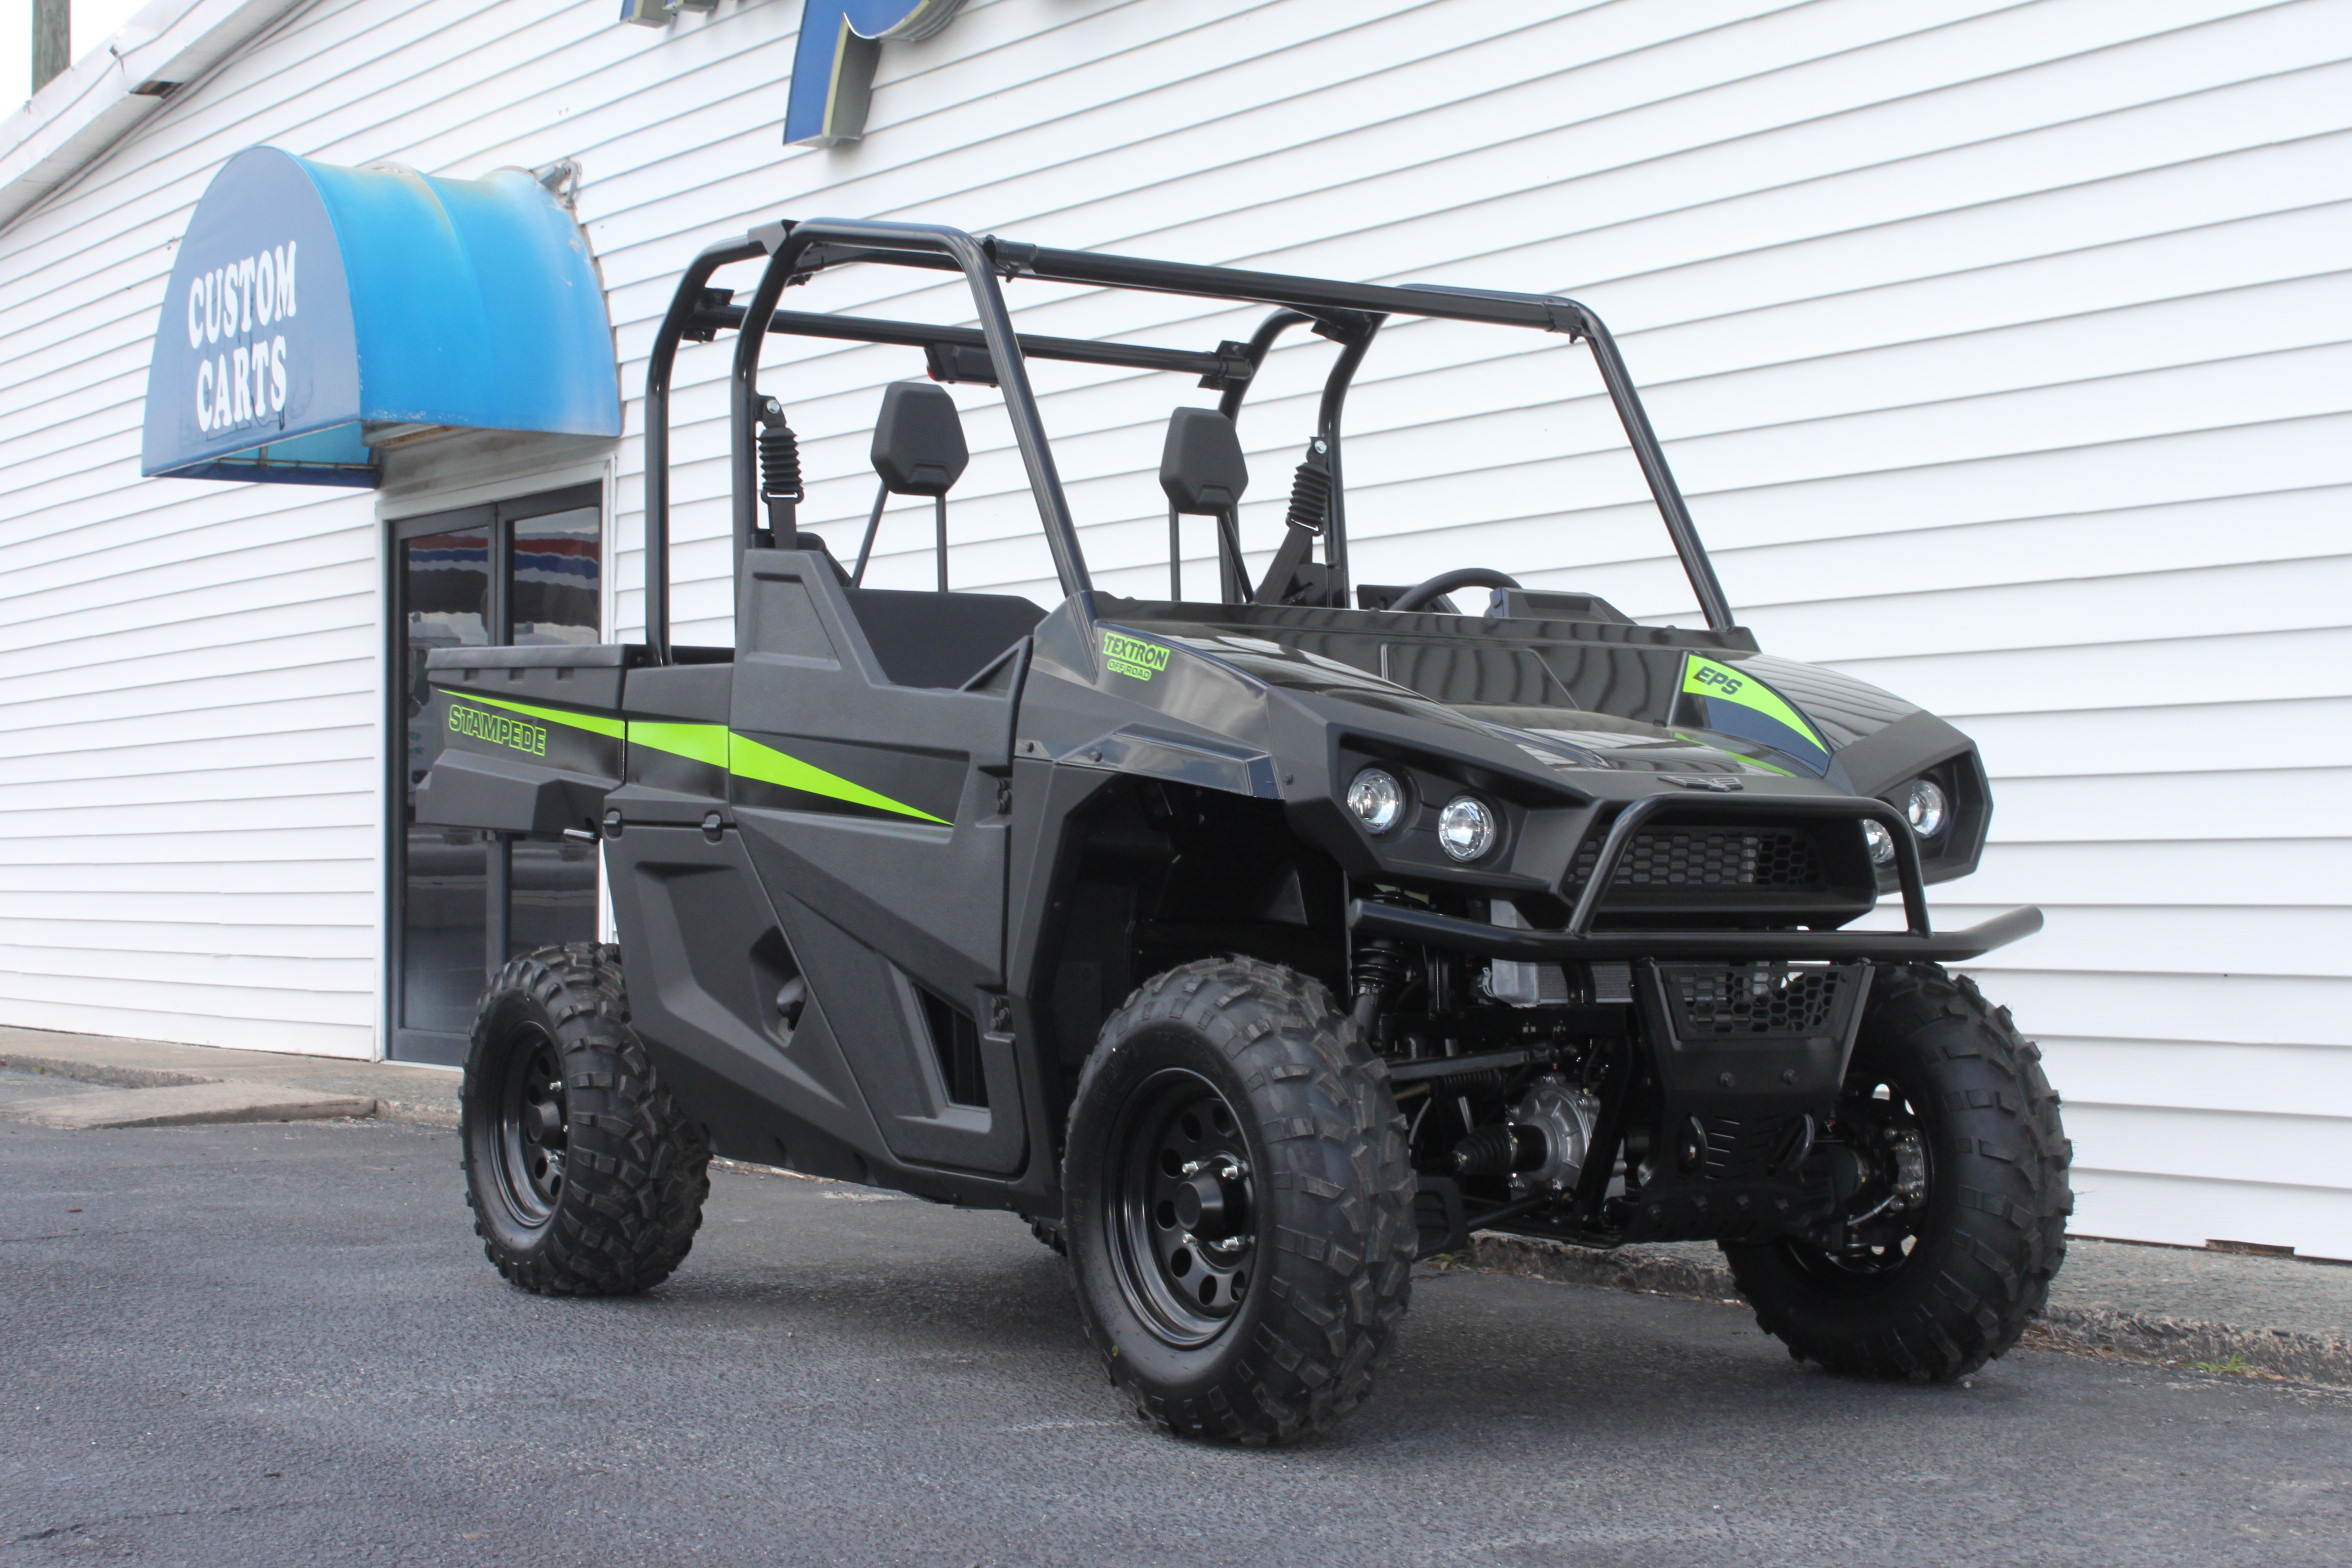 STOCK# 9005725, 2018 TEXTRON OFF ROAD STAMPEDE 4X4